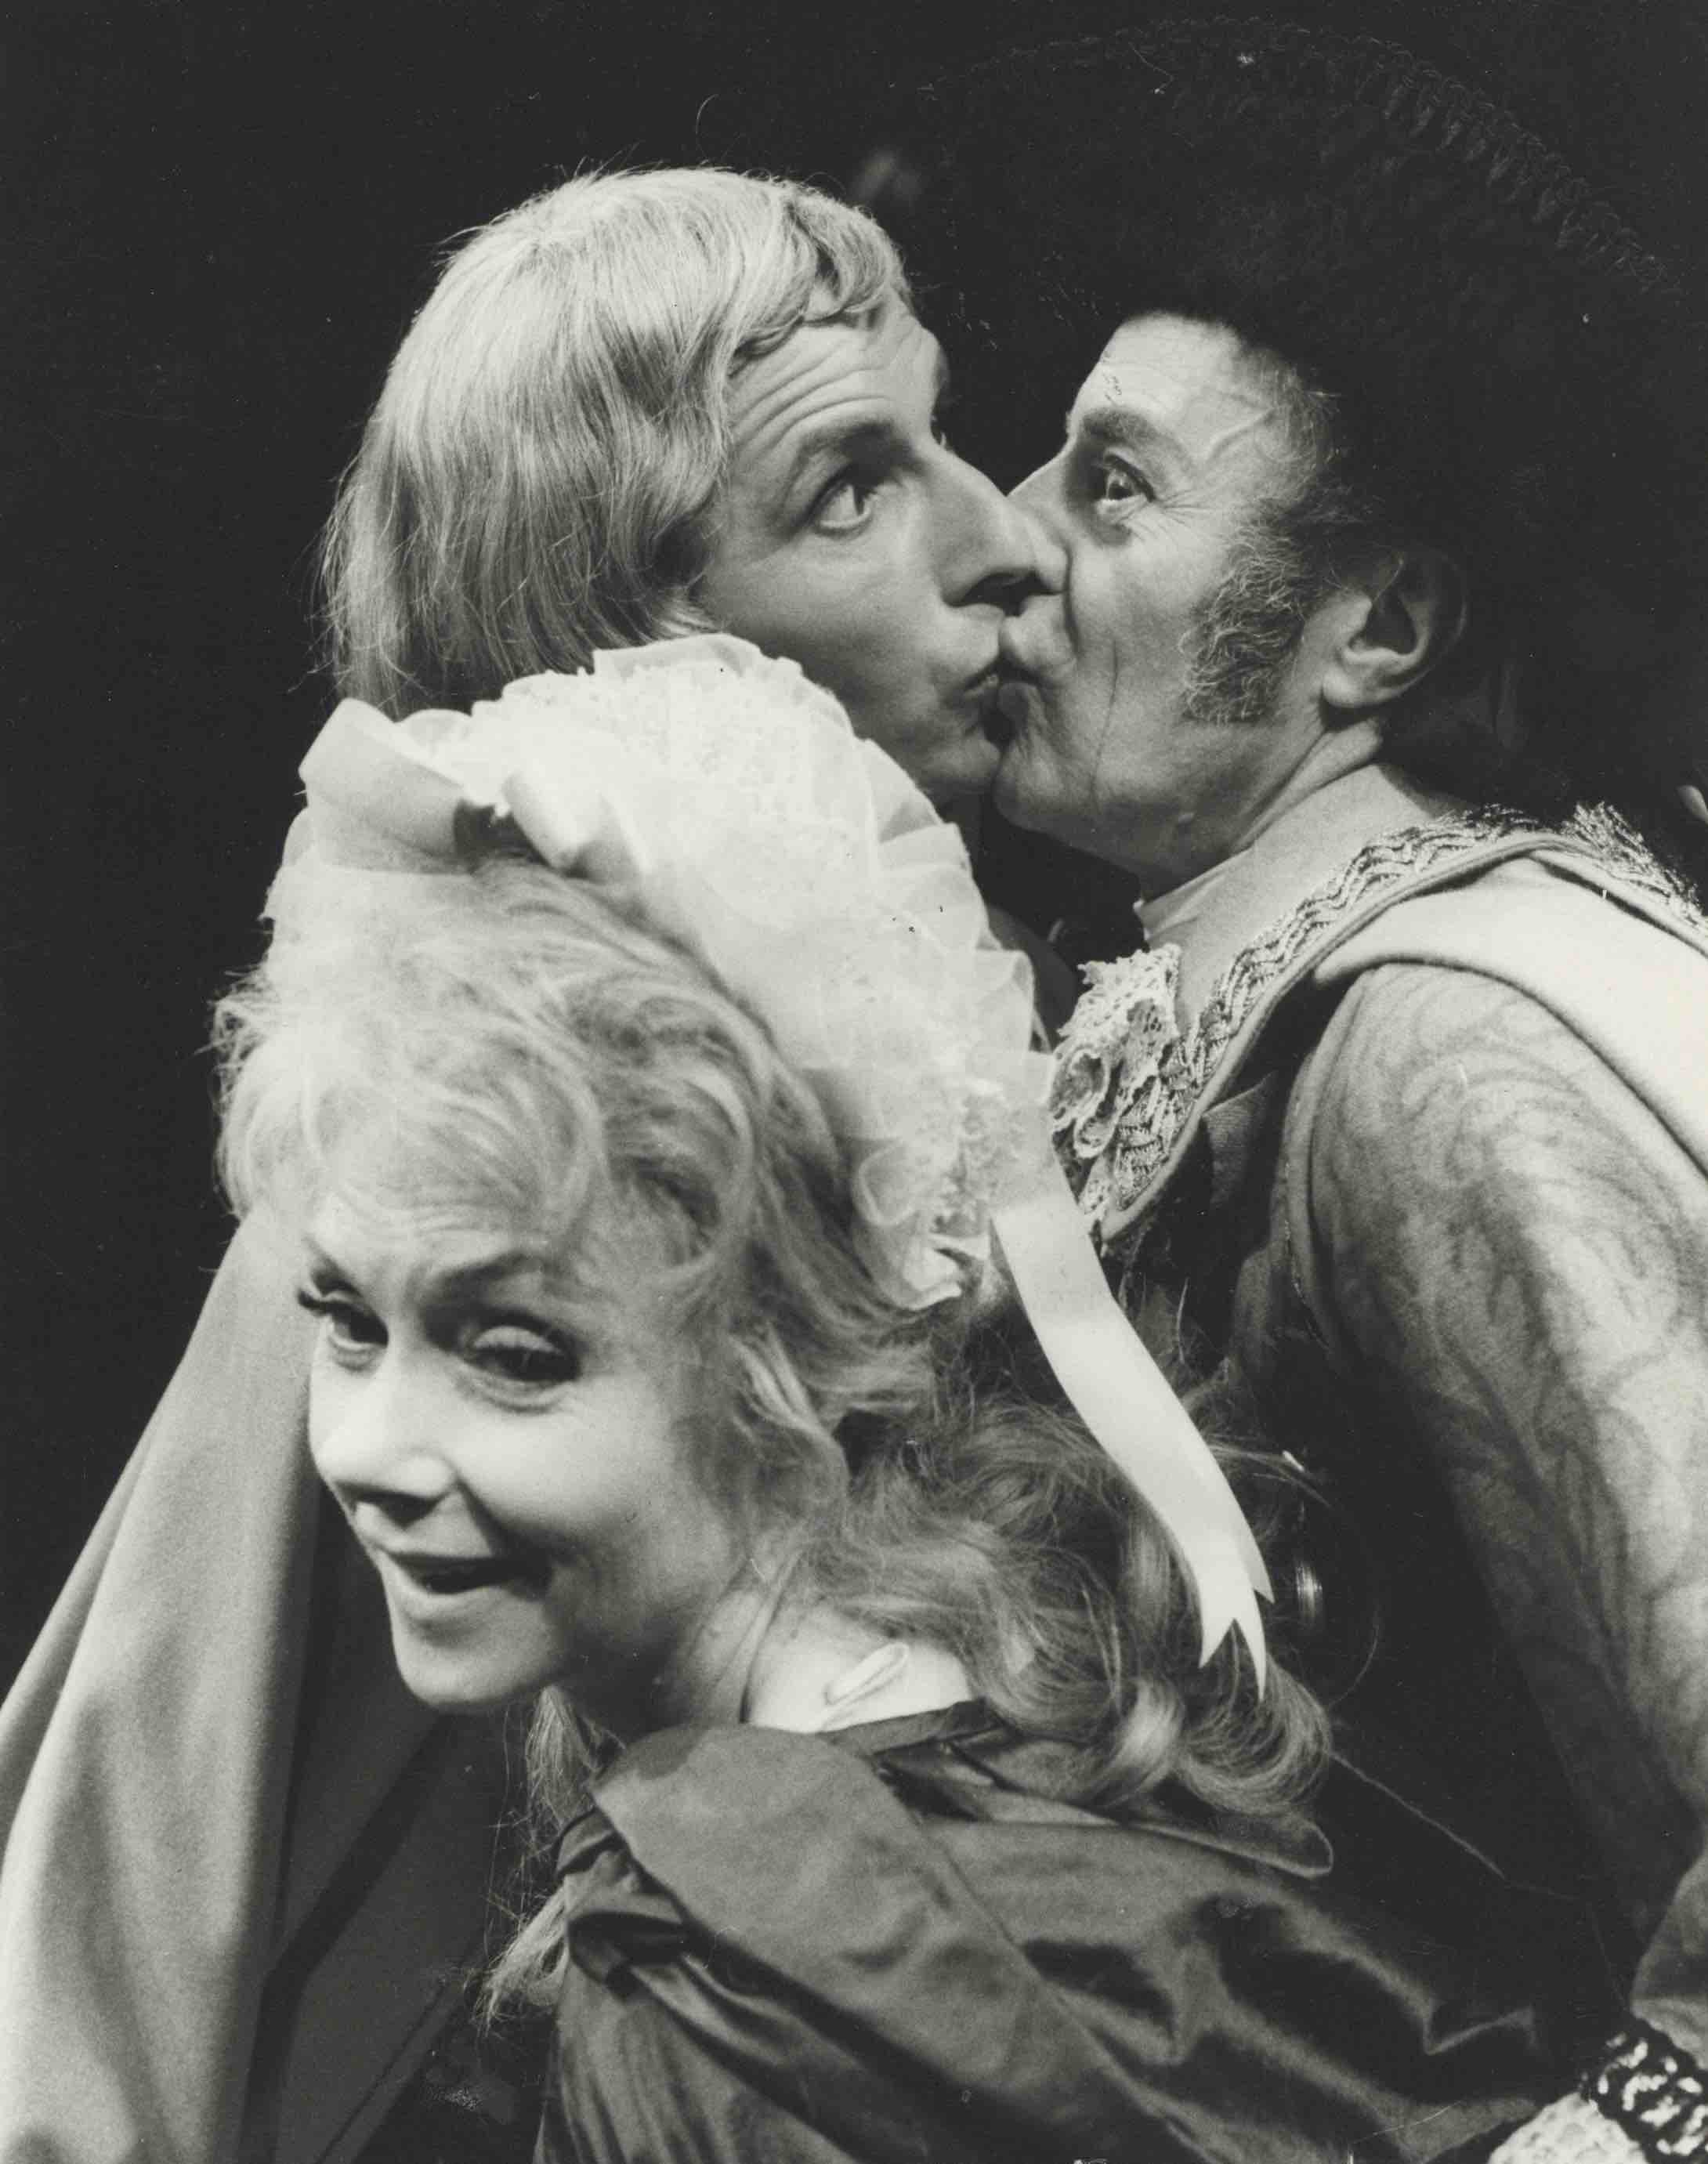 Production photograph - The Country Wife - Renee Asherton, Gary Hope and Hugh Paddick - Photographer John Timbers - 1969 - WSRO - dimensions unknown